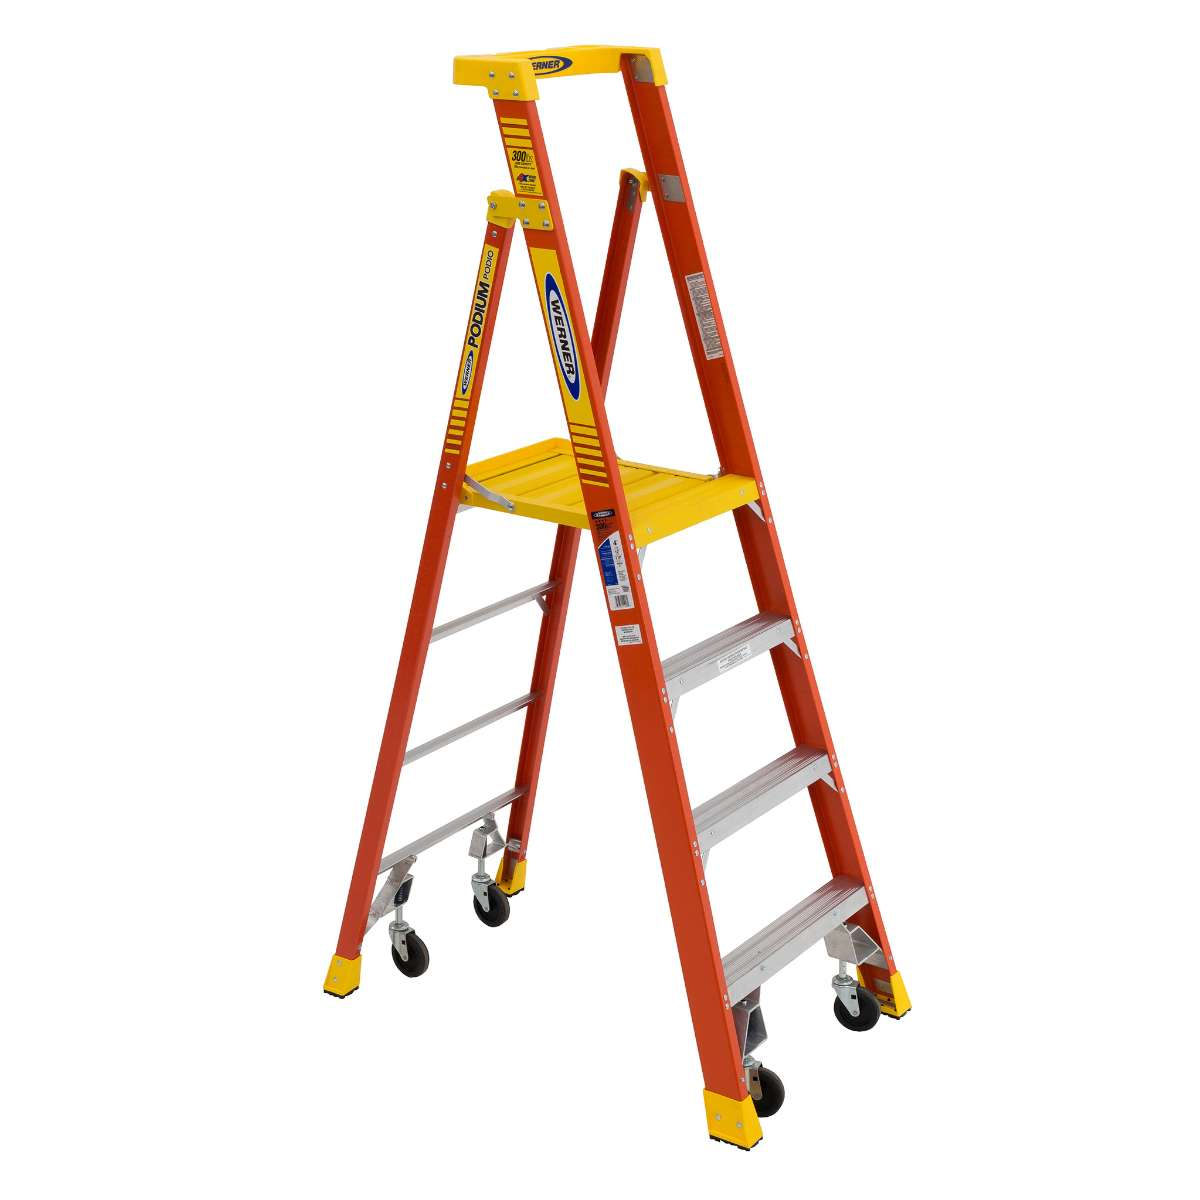 Podium Ladder with Castors - 300 lb. Capacity (PD6200-4C Series)